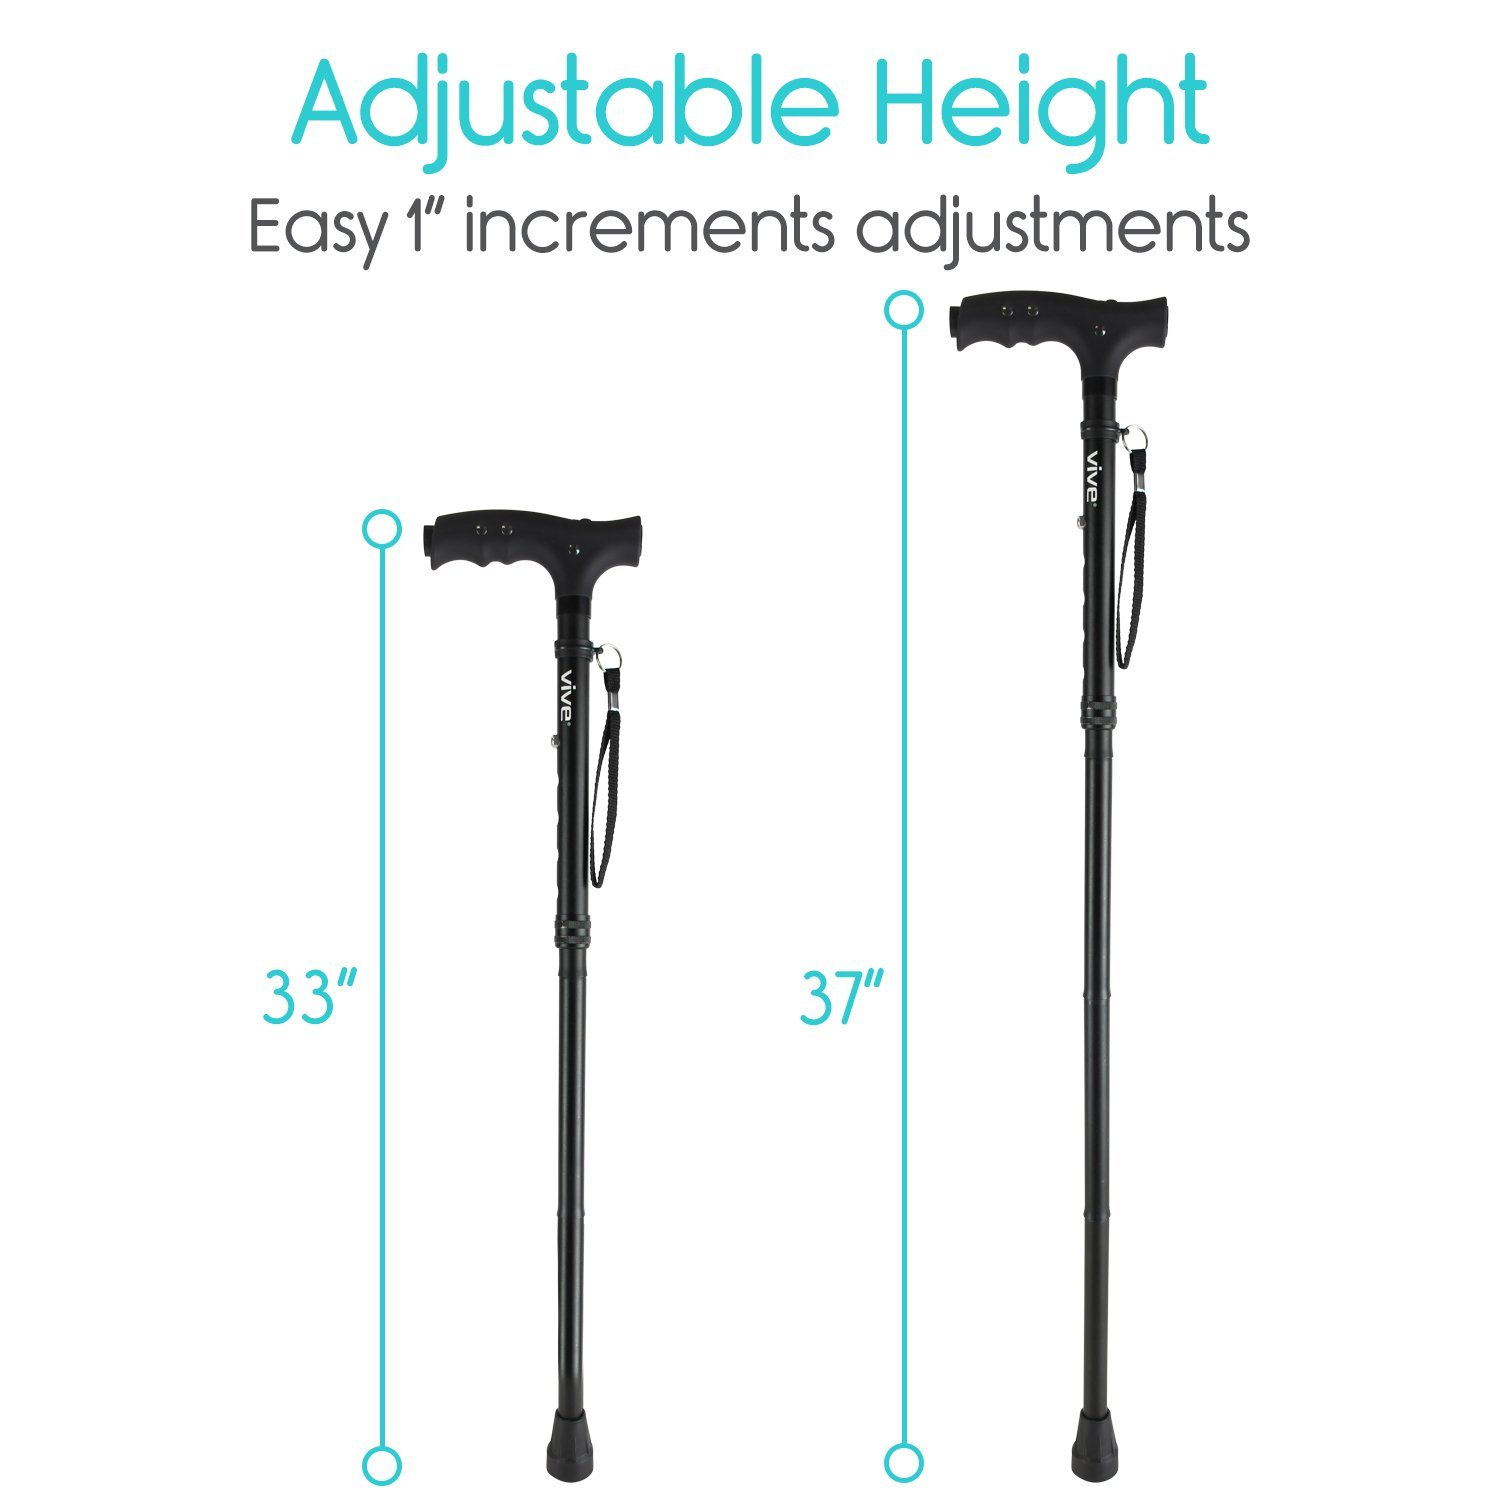 Vive LED Folding Cane with Light - Lightweight Collapsible Aluminum Walking Aid with Flashlight - Bariatric Foldable Small Travel Stick - Men, Women, Senior - Easy Fold up - Cool, Fashionable (Black) by VIVE (Image #4)